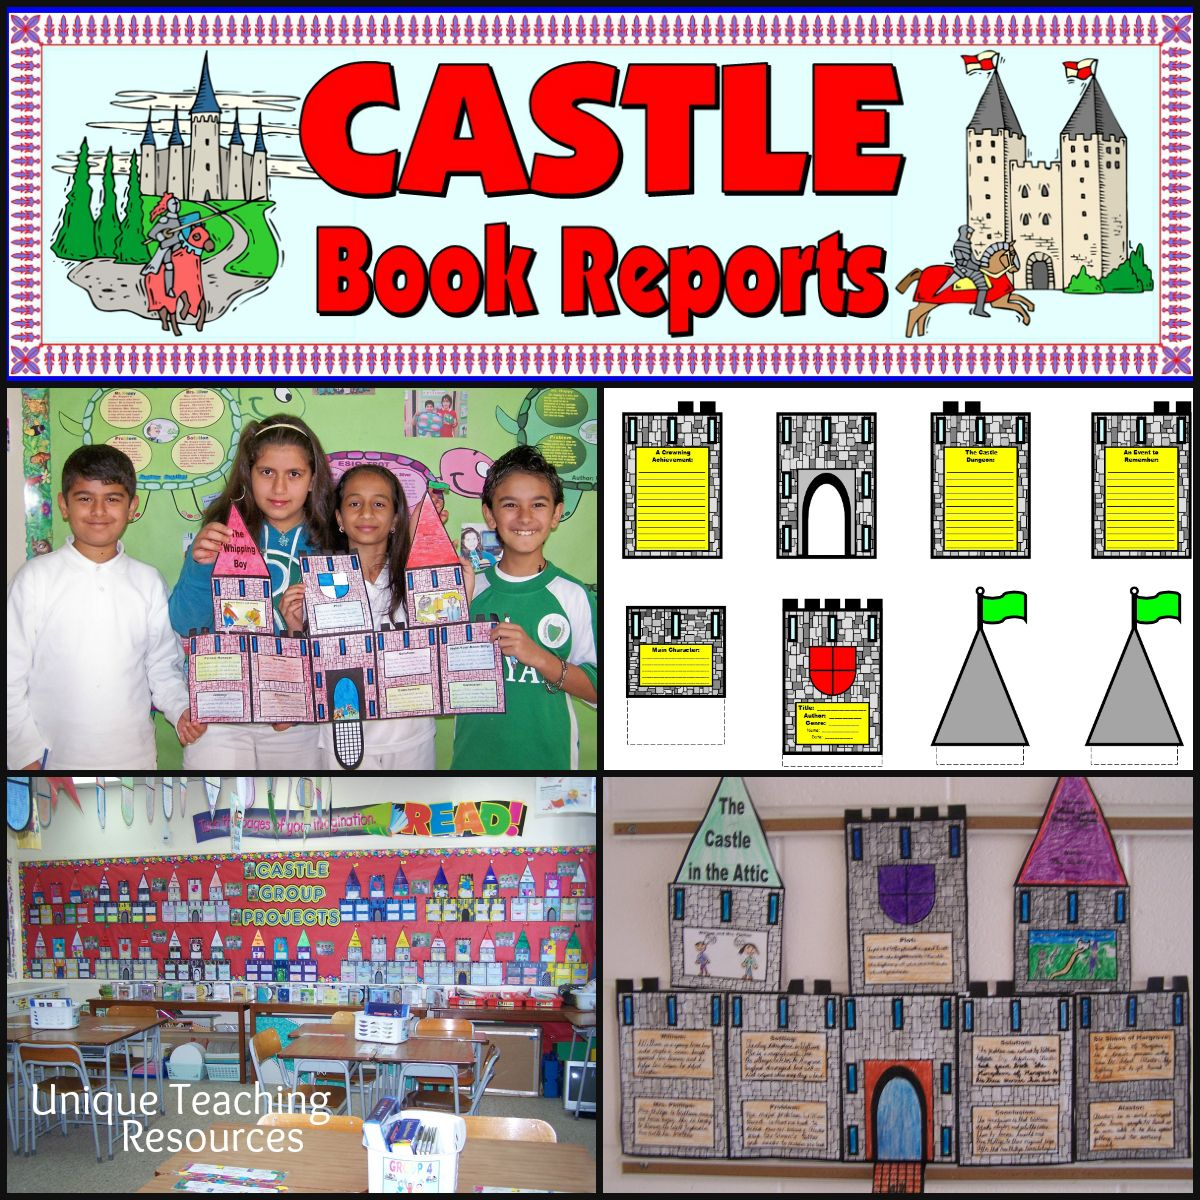 Extra Large Castle Book Report Project Templates Worksheets Rubric And More